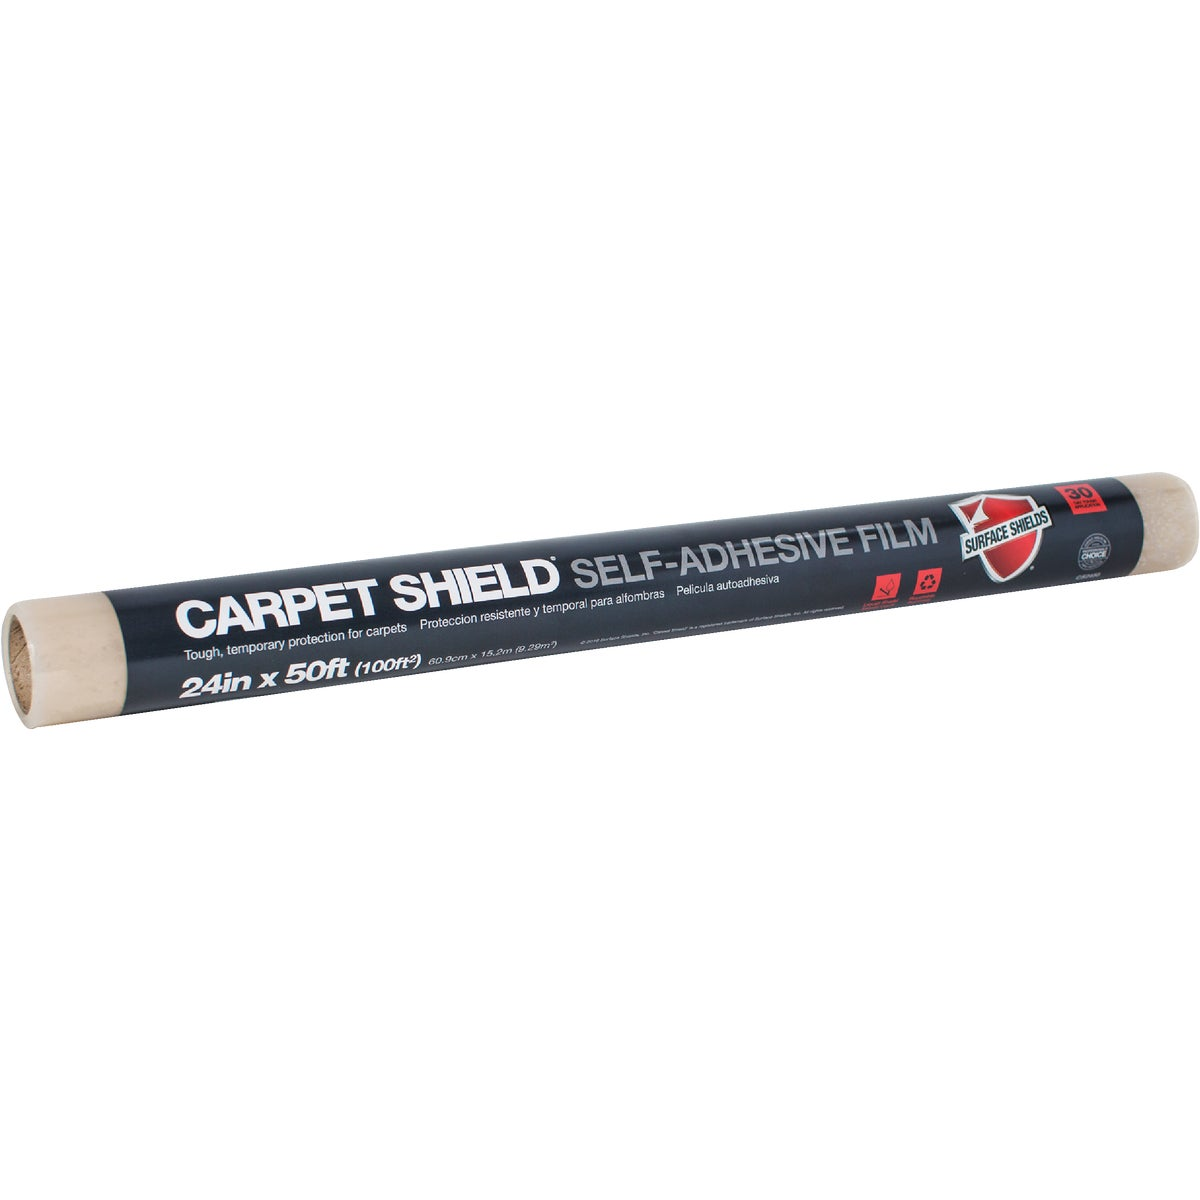 21X30 CARPET SHIELD - CS2130W by Surface Shields Inc